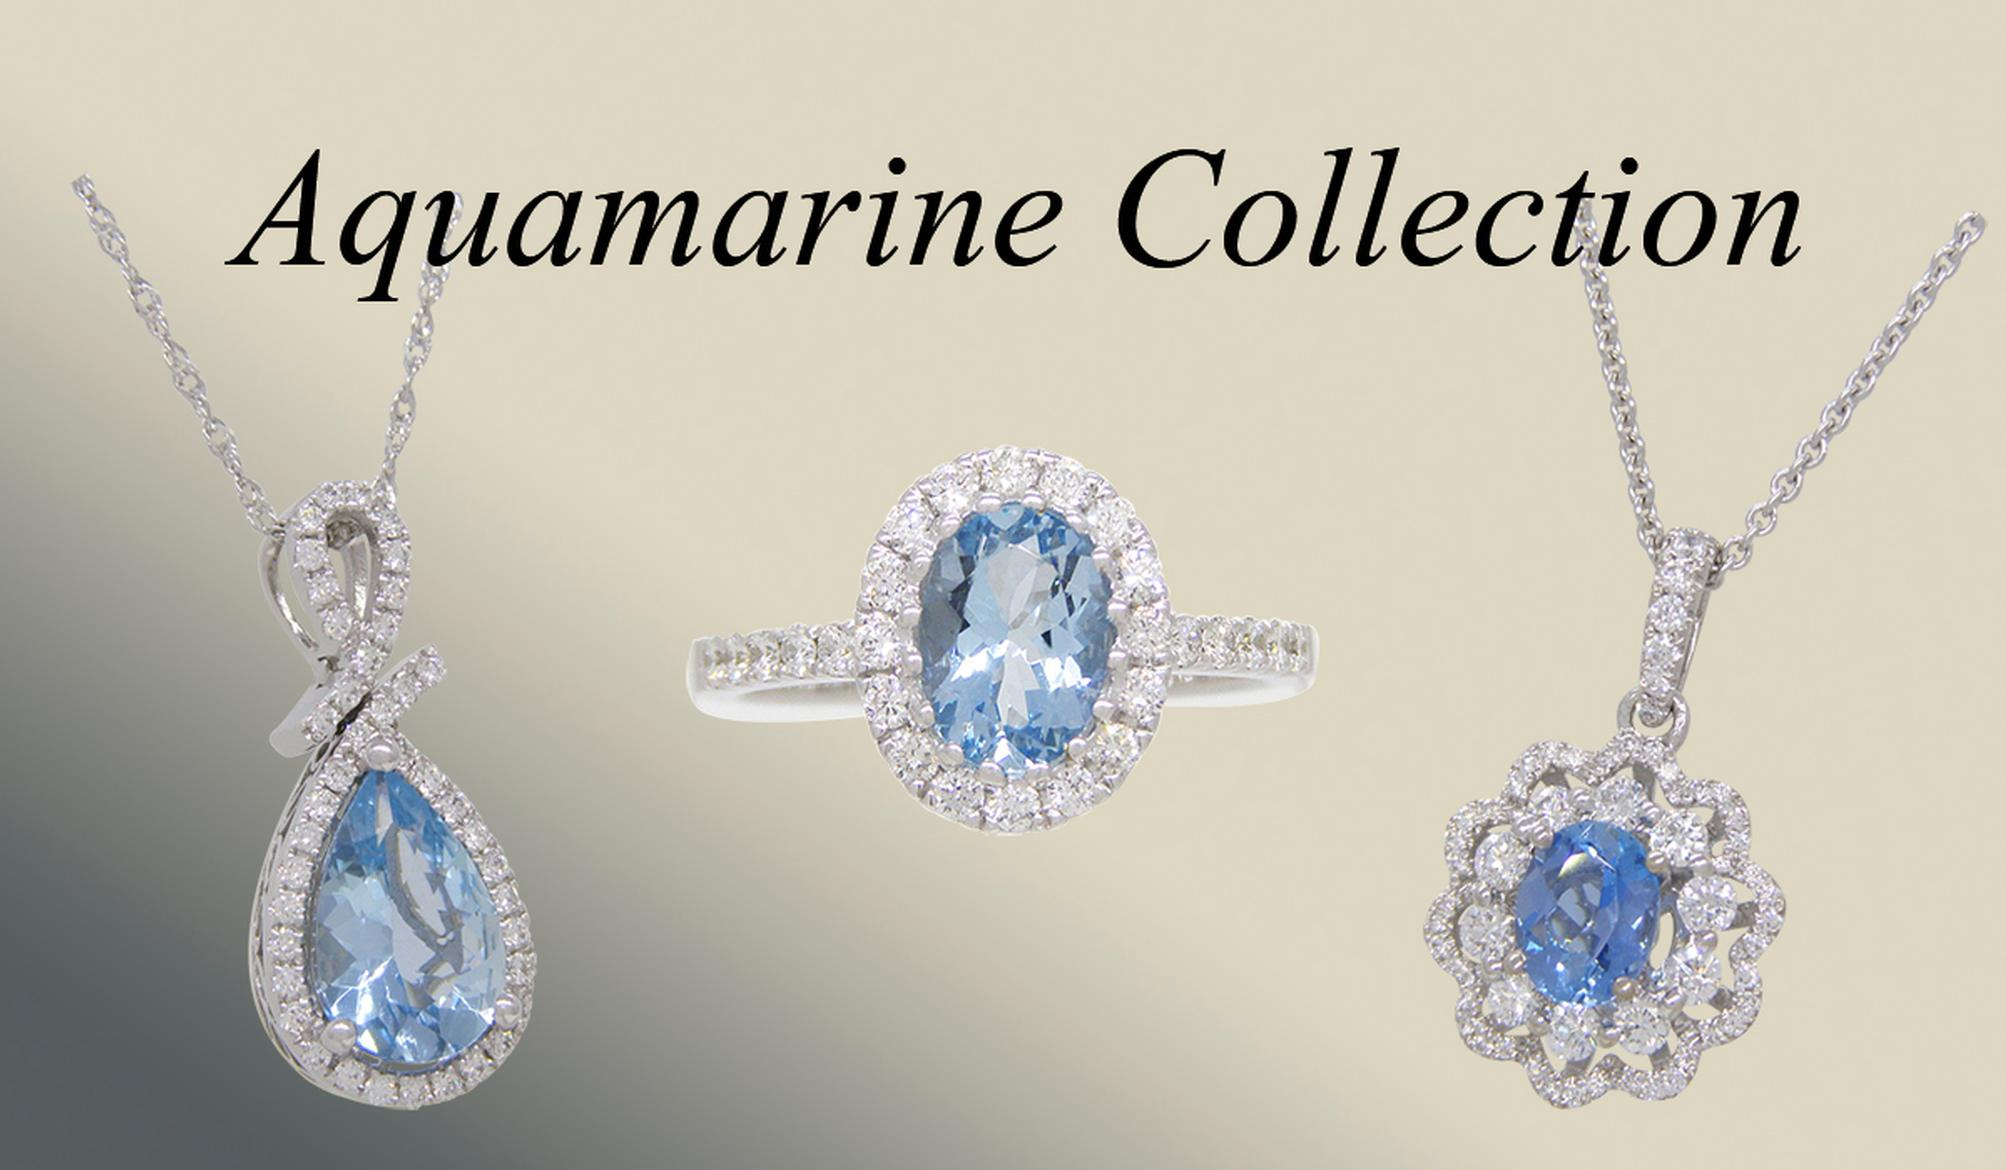 Aquamarine Collection